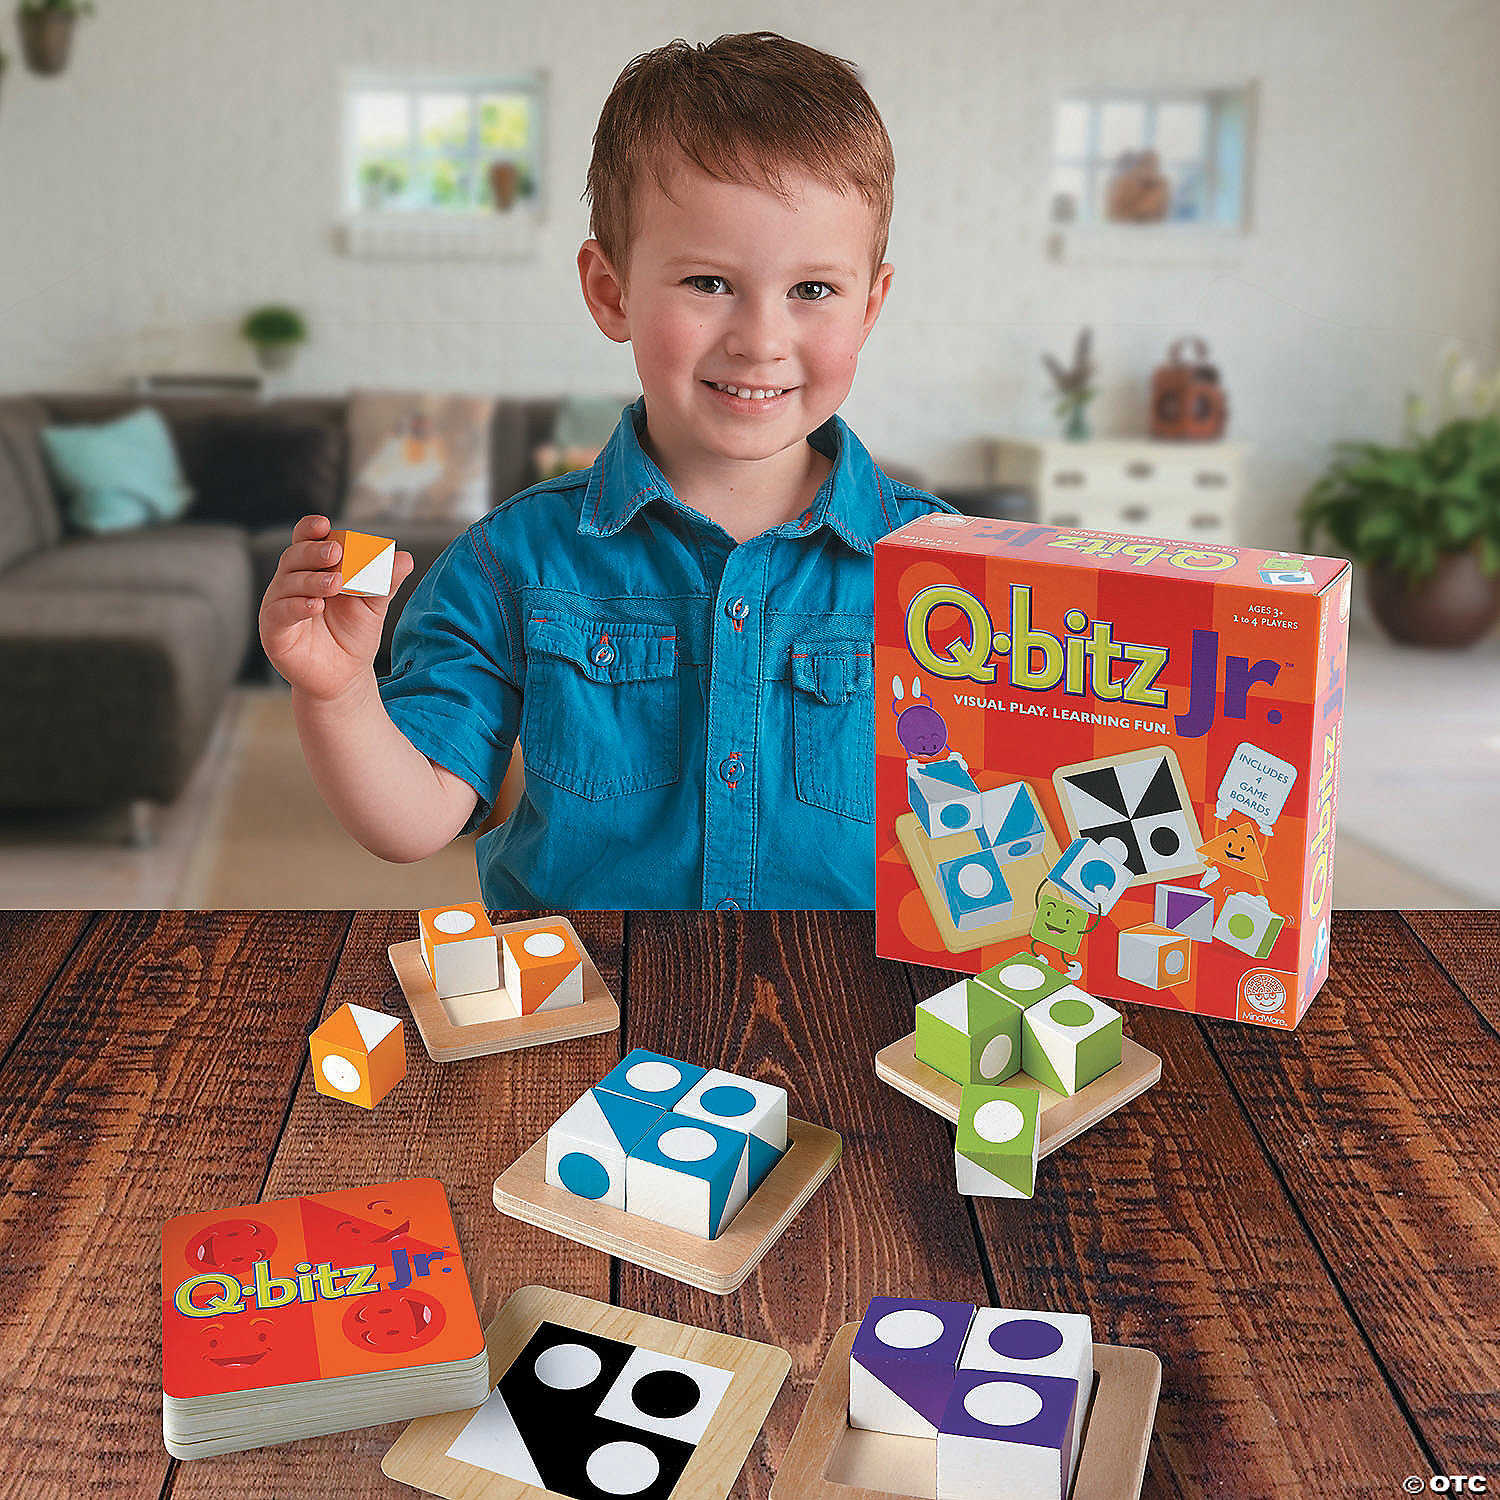 Educational Toys & Learning Games for 4 Year Old Boys & Girls